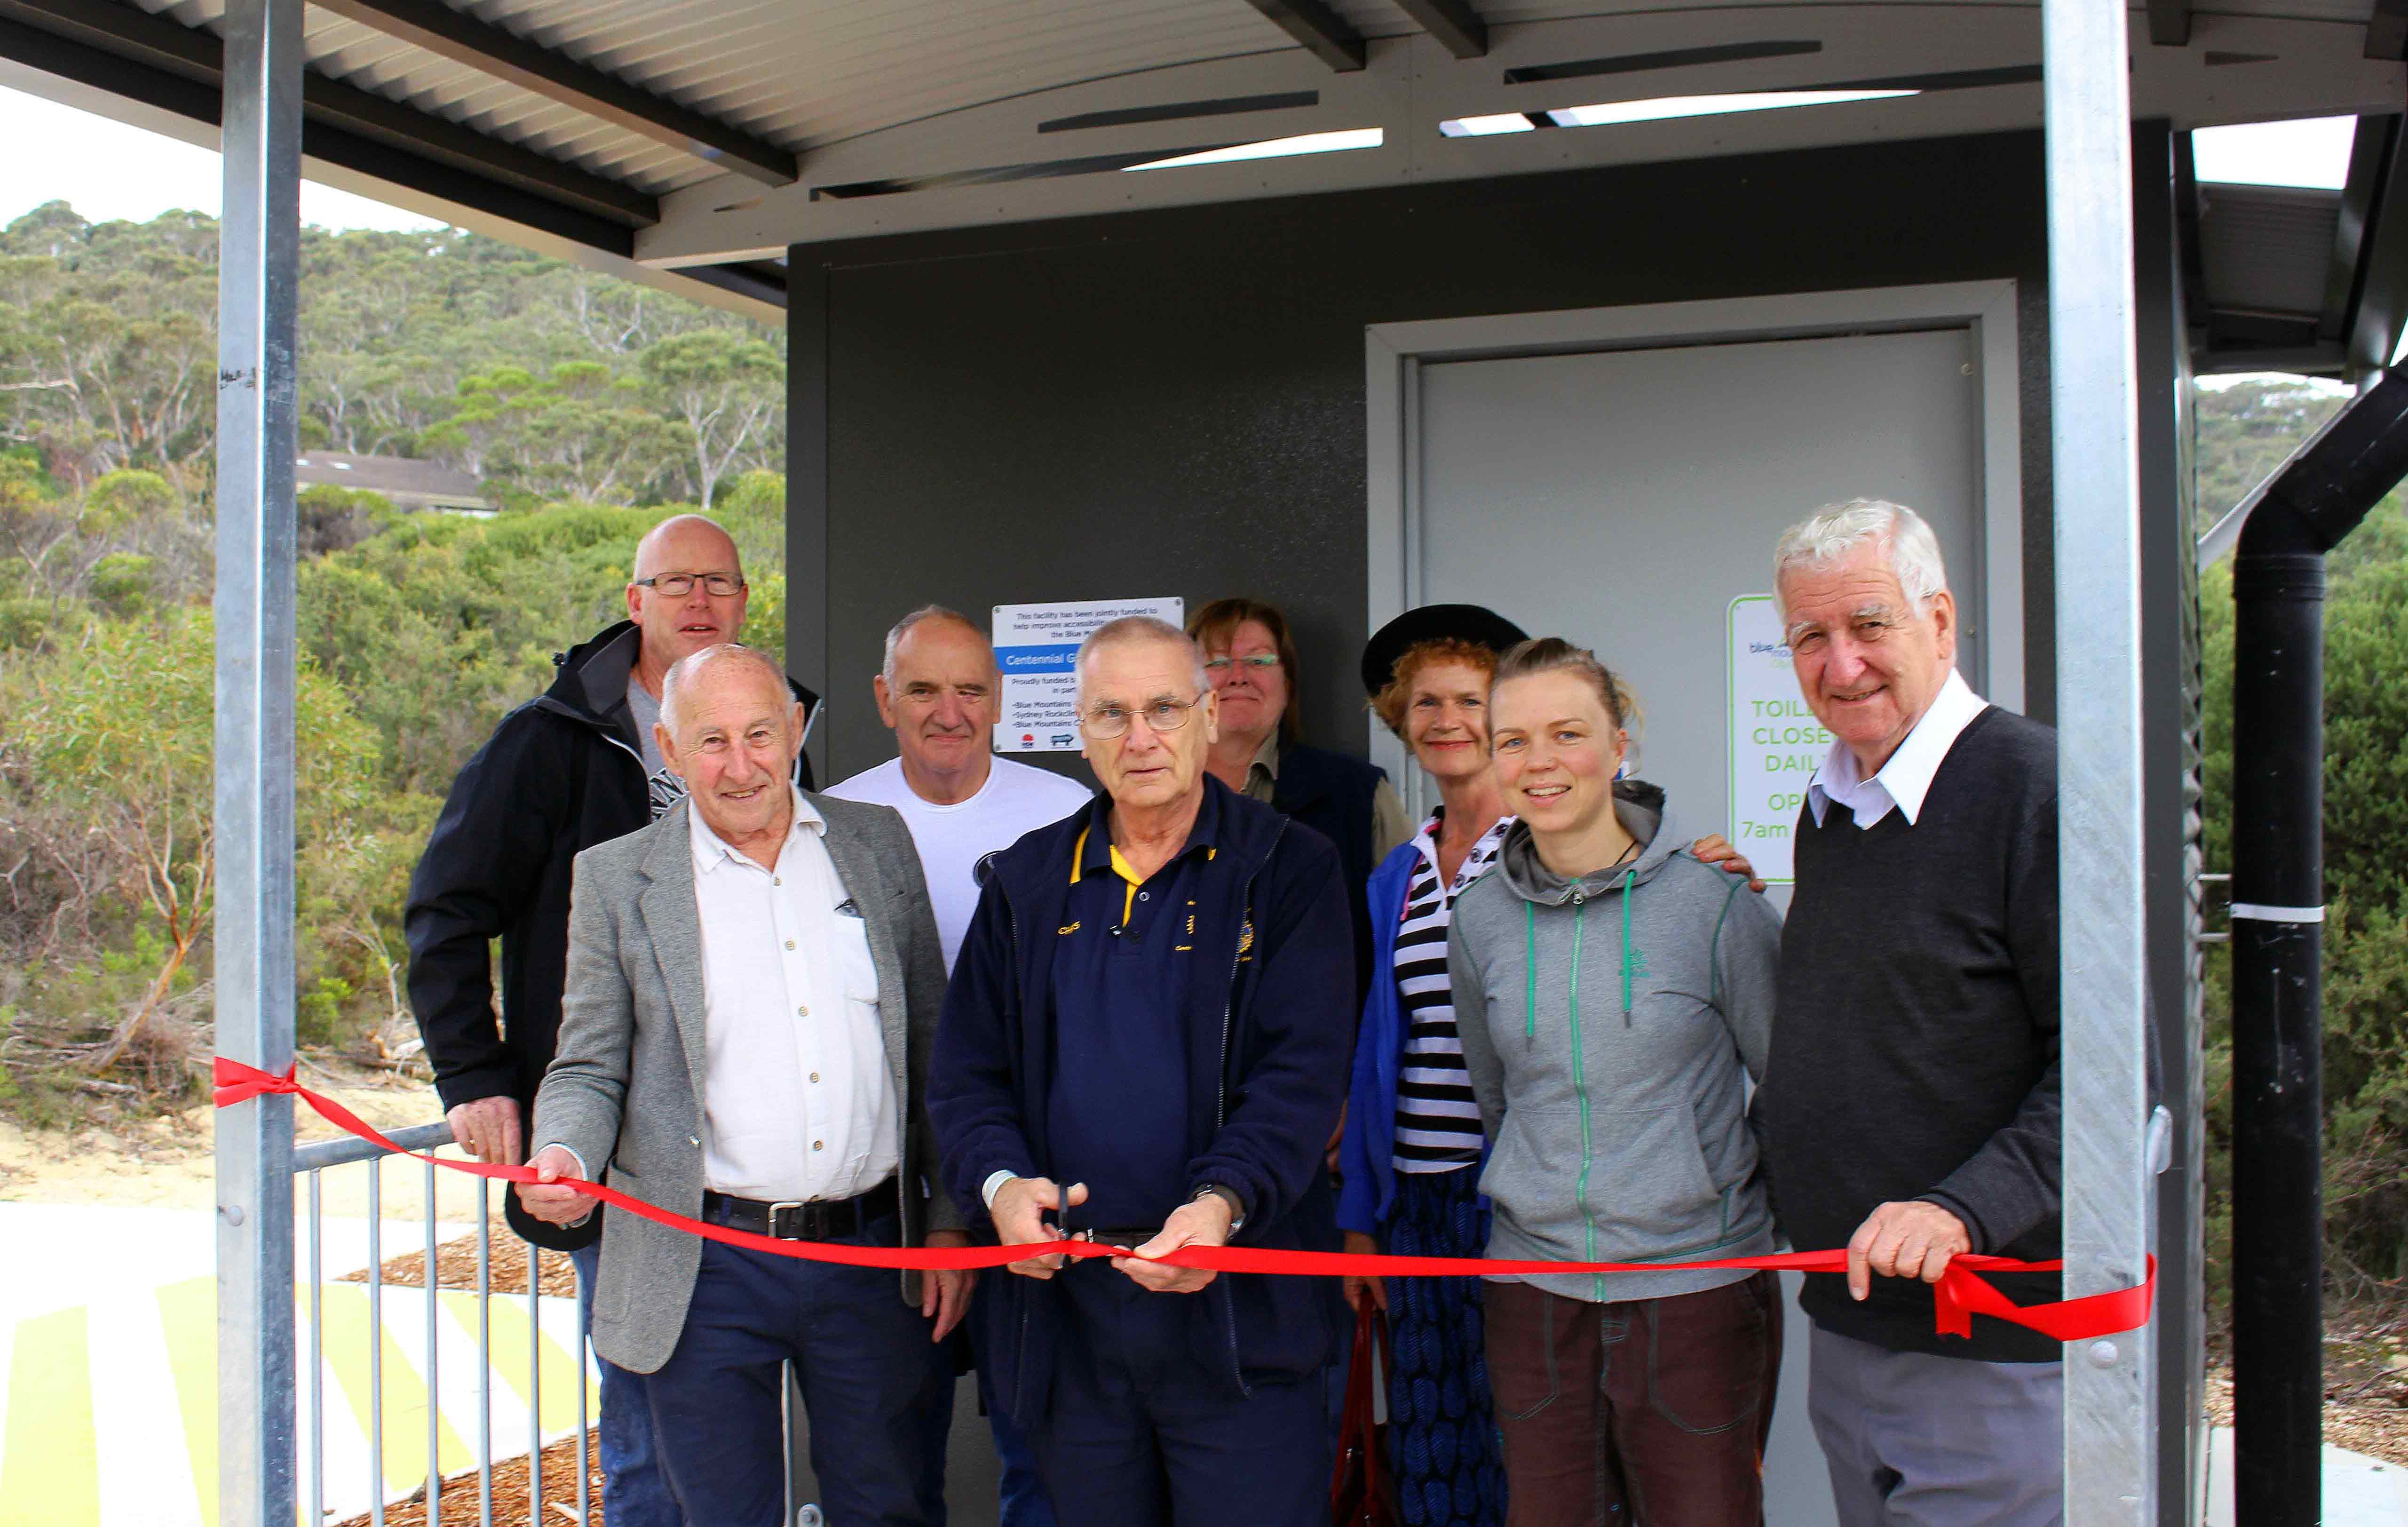 Loo with a view – The new toilet is now open at Centennial Glen climbing site. Blue Mountains Cragcare Founder Damien Taylor, Cr Don McGregor, Sydney Rock Climbing Club President Andrew Lishmund, Deputy Mayor Cr Chris Van der Kley, Council Natural Areas Management Officer Trish Kidd, Cr Kerry Brown, Cragcare volunteer coordinator Katariina Rahikainen and Cr Kevin Schreiber celebrate the opening